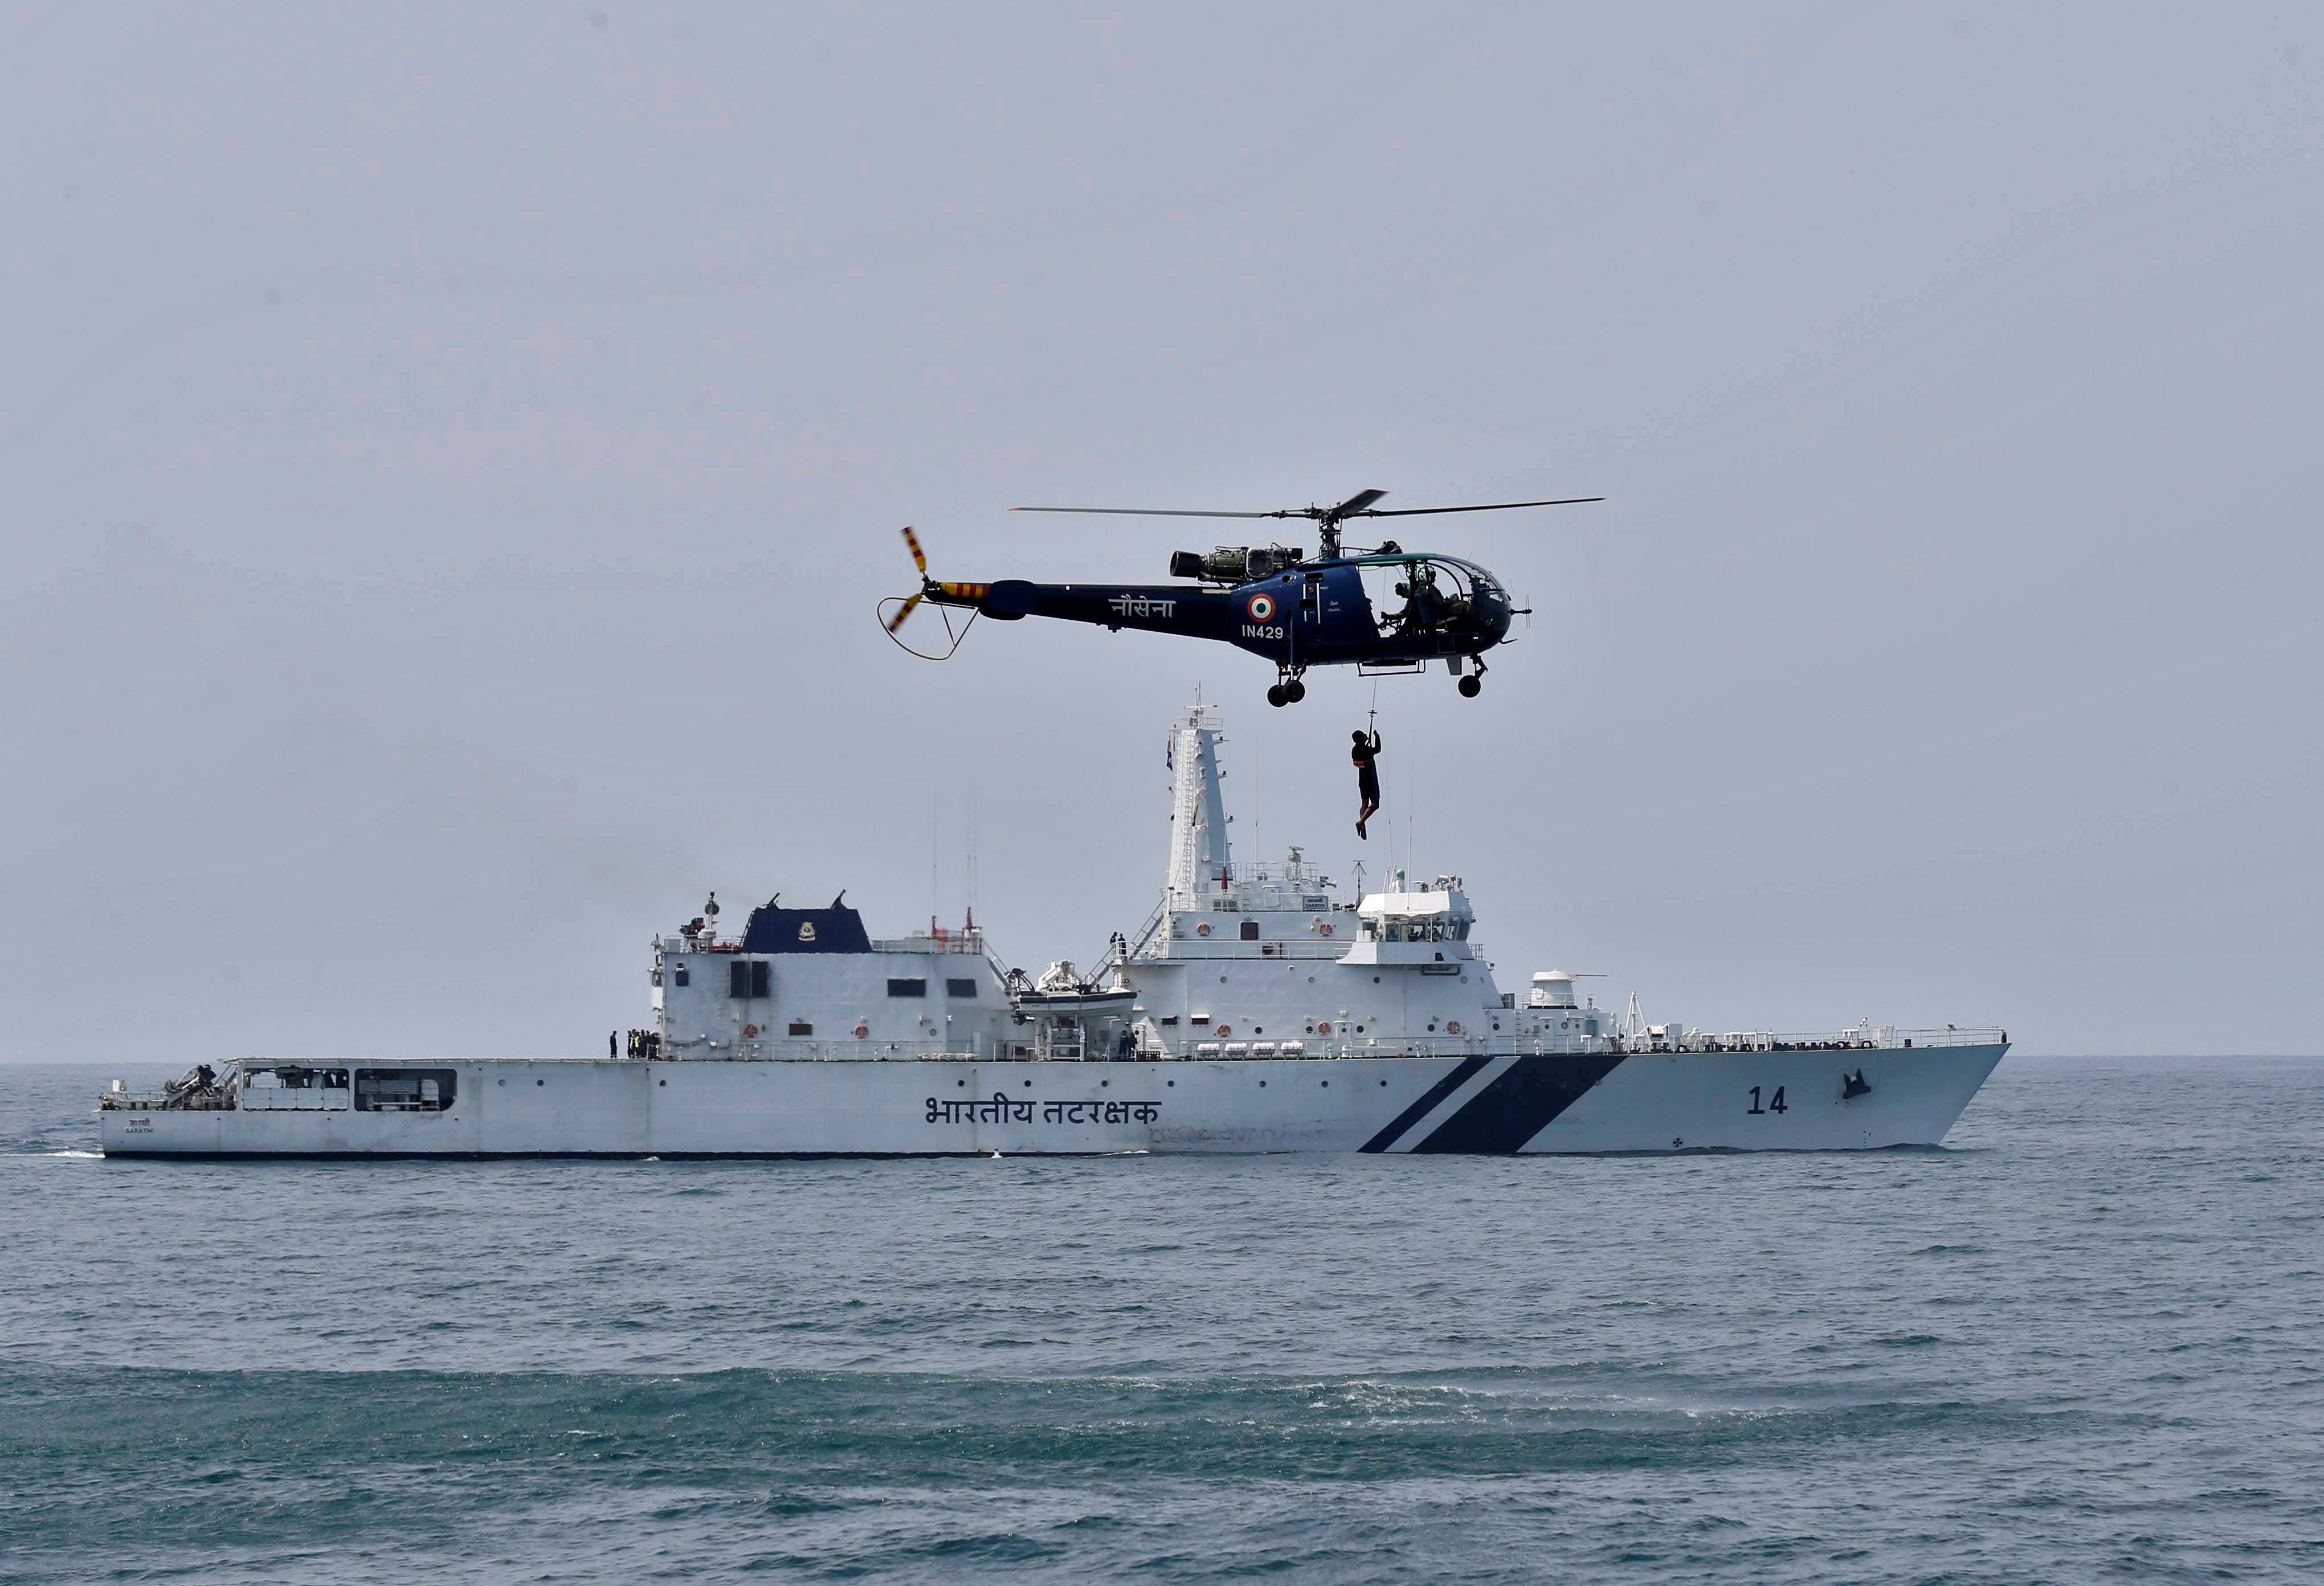 From yachting to Marcos live demo, Indian Navy gears up for DefExpo2020